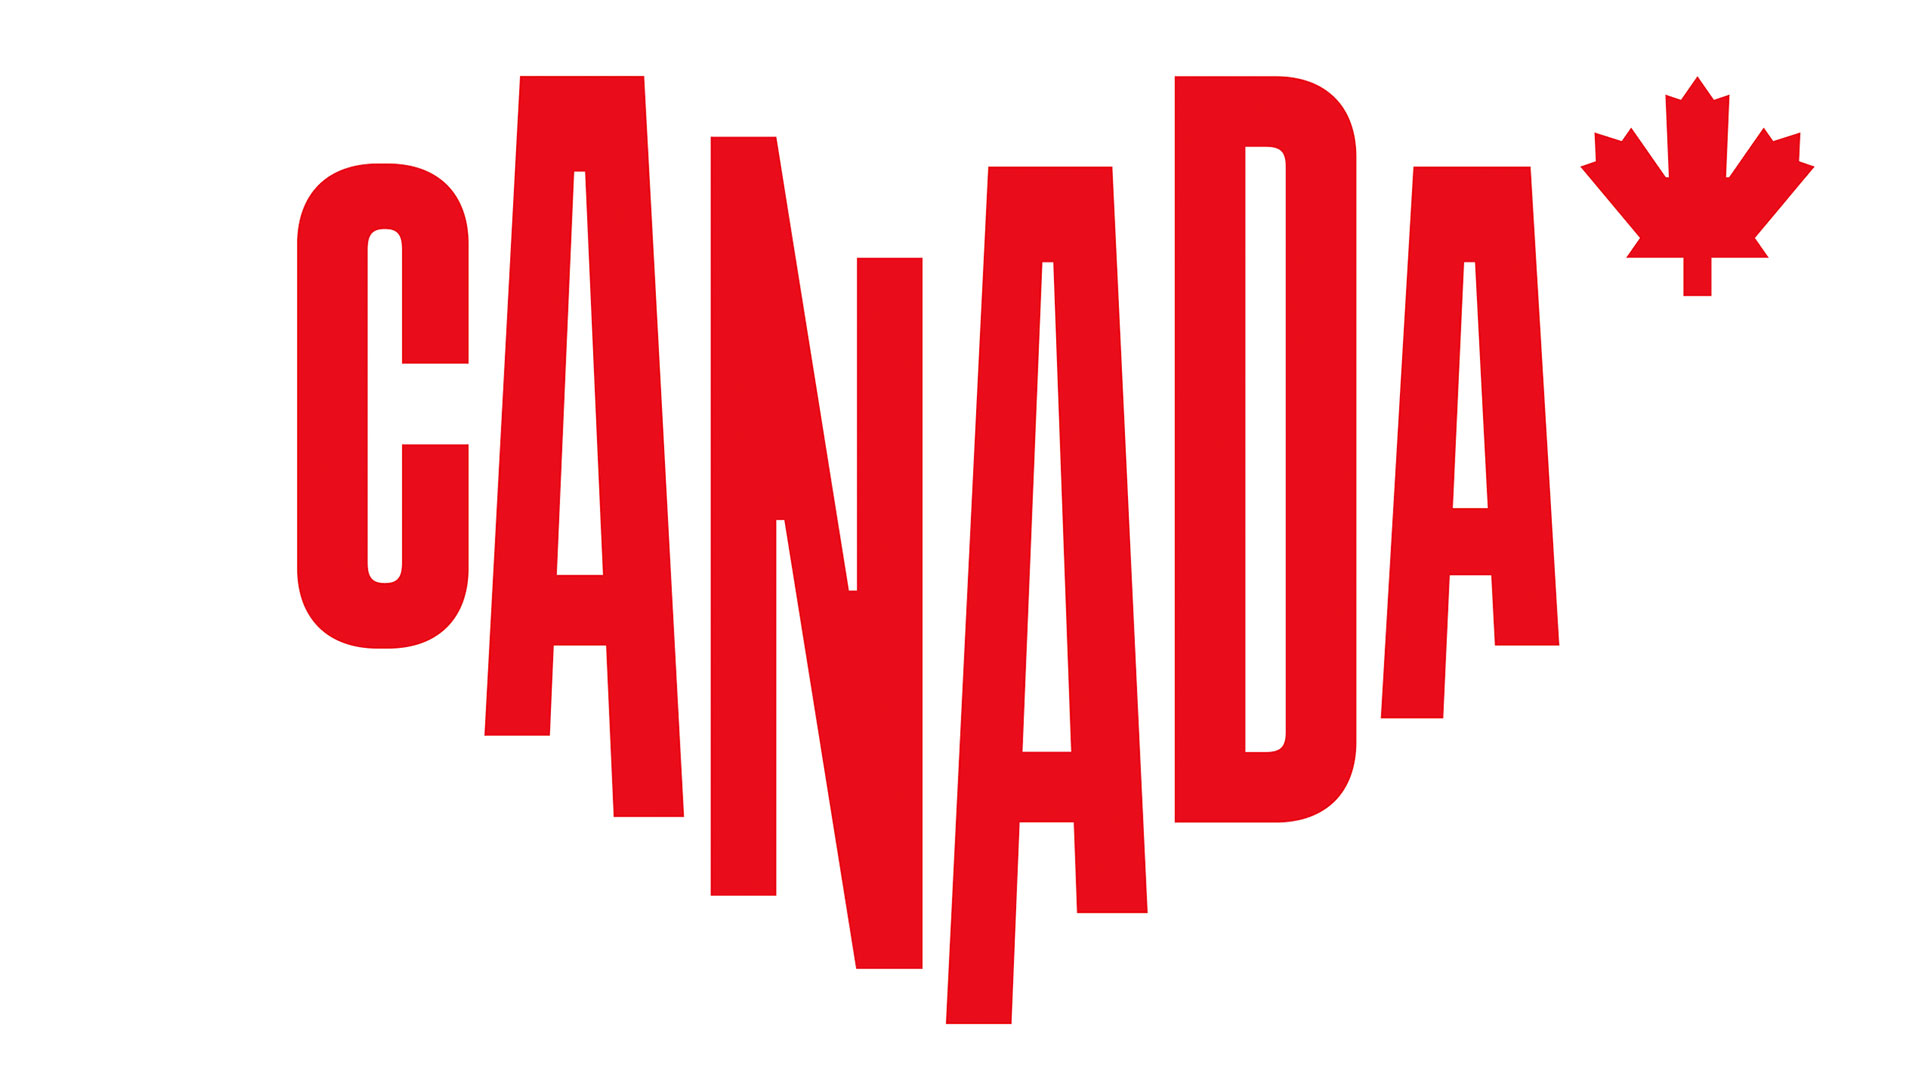 Canadian tourism logo will set your hearts pounding | Creative Bloq